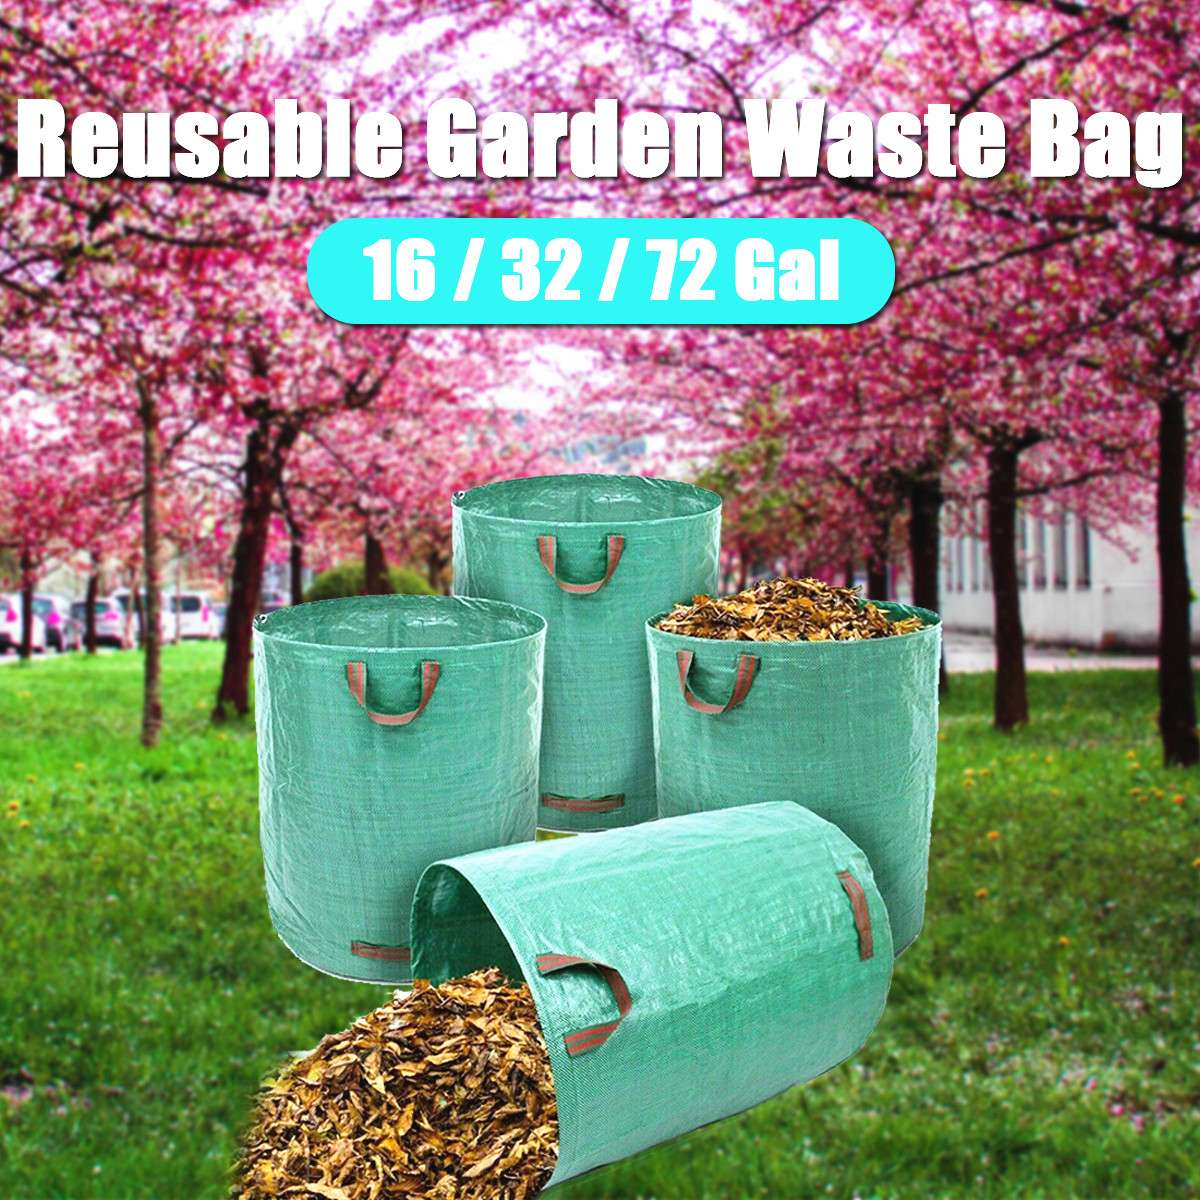 60L/120L/272L Large Capacity Heavy Duty Garden Waste Bag Durable Reusable Waterproof PP Yard Leaf Weeds Grass Container Storage